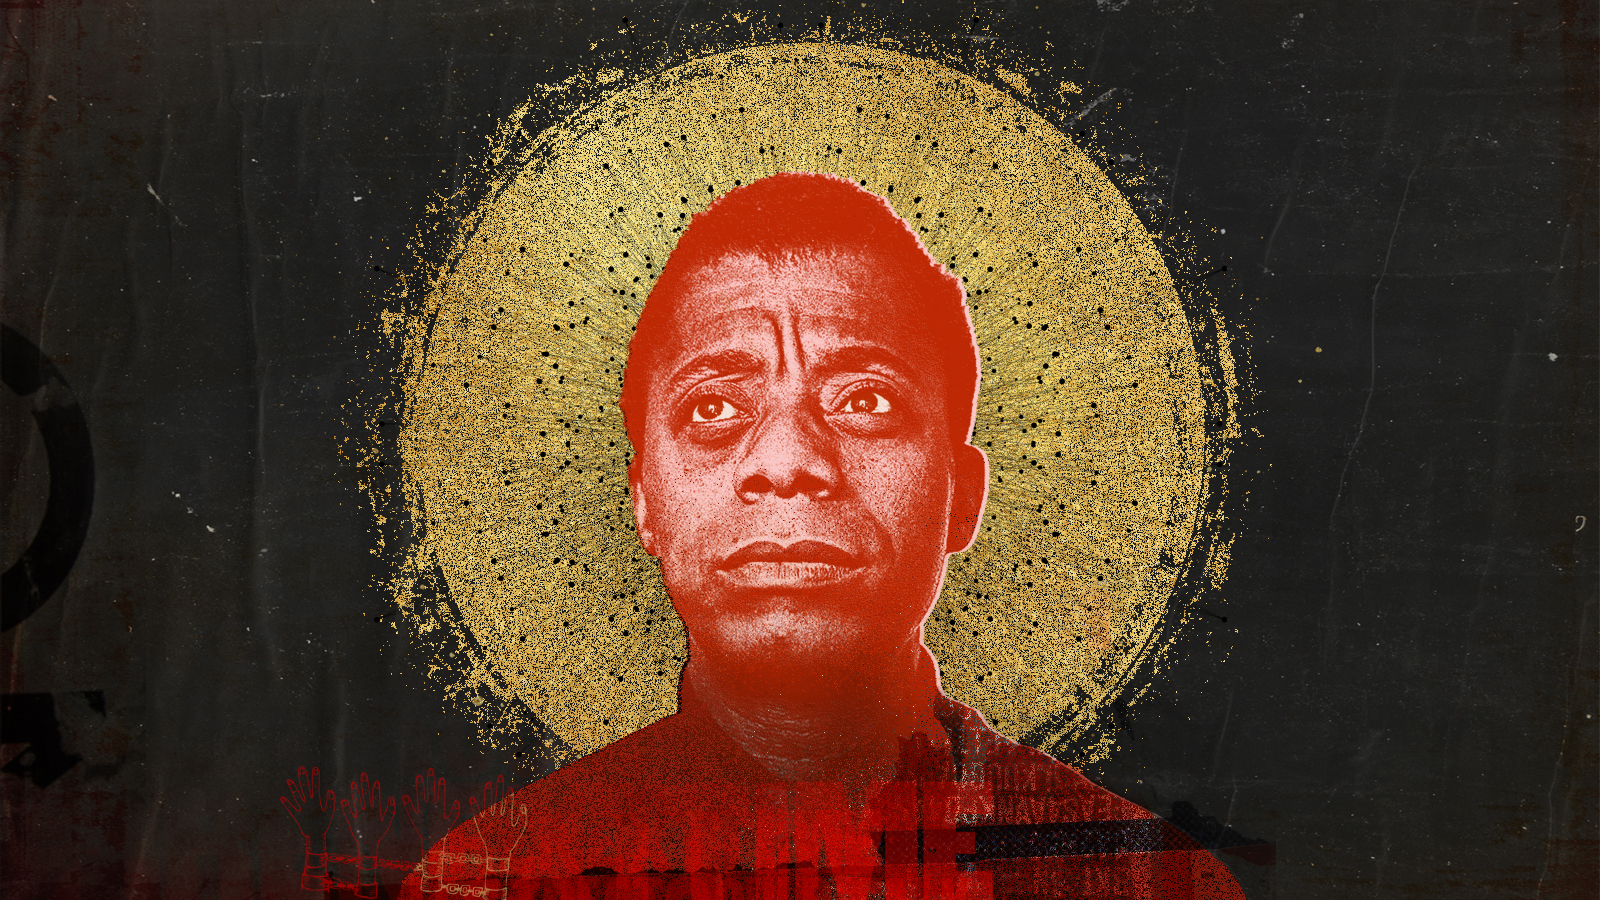 CHAPTER & VERSE: THE GOSPEL OF JAMES BALDWIN